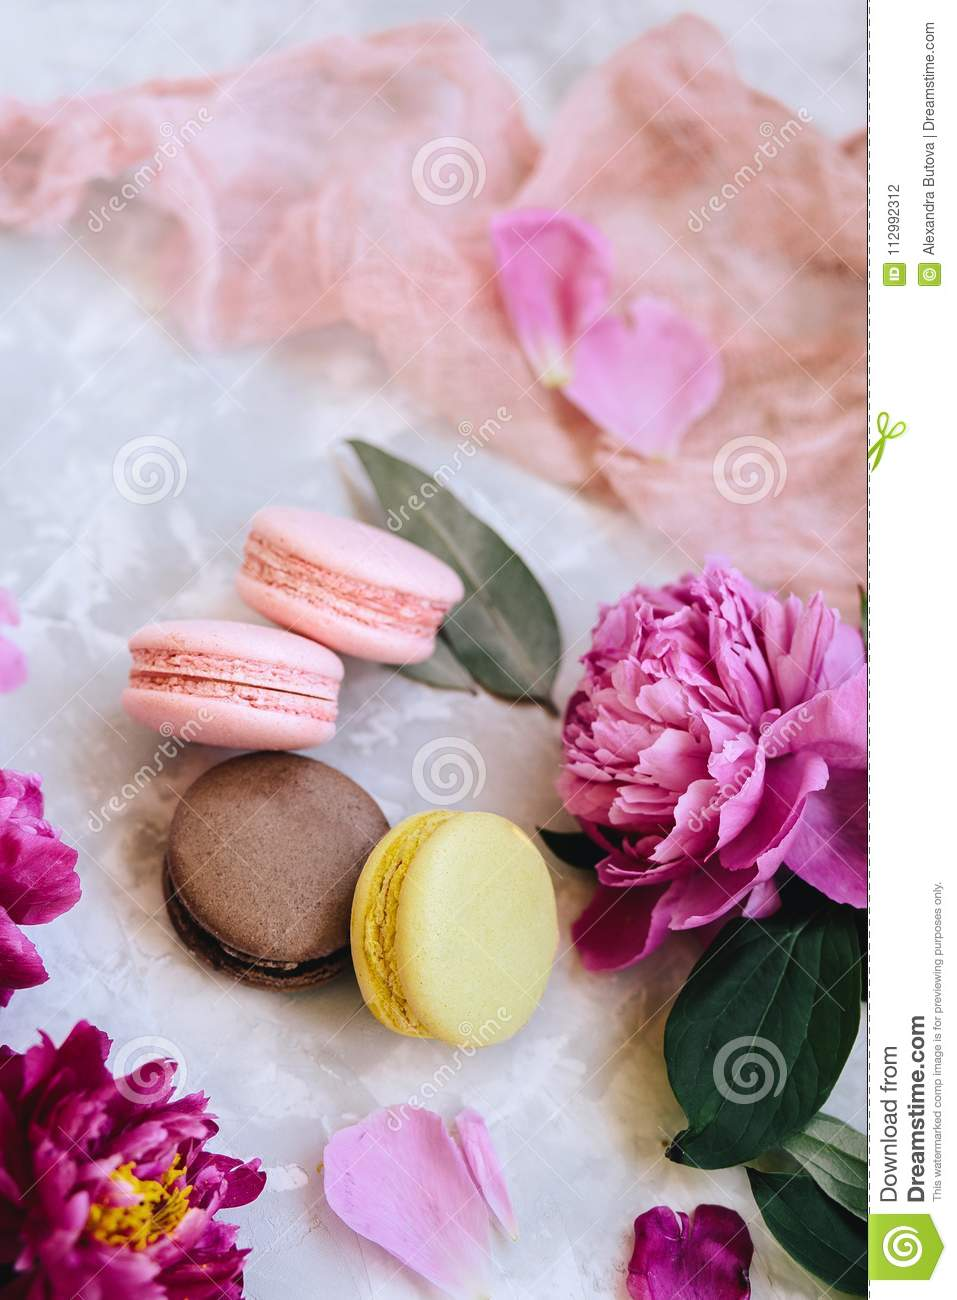 Spring composition: colorful macaroons with purple and pink peonies, green leaves on a light concrete background and a pink cloth